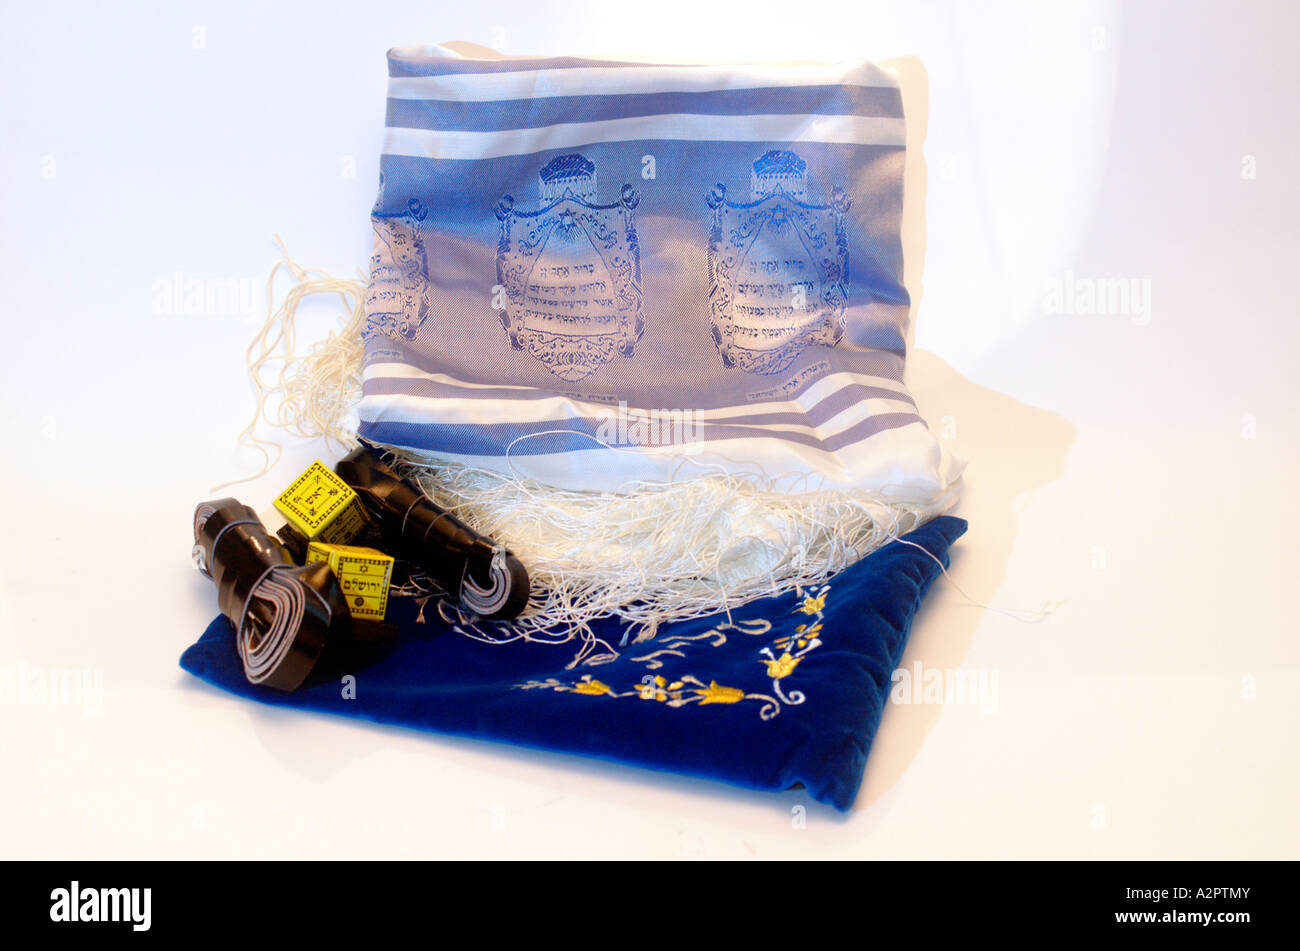 Tifillin Tallit and elaborated decorated tfillin bag - Stock Image